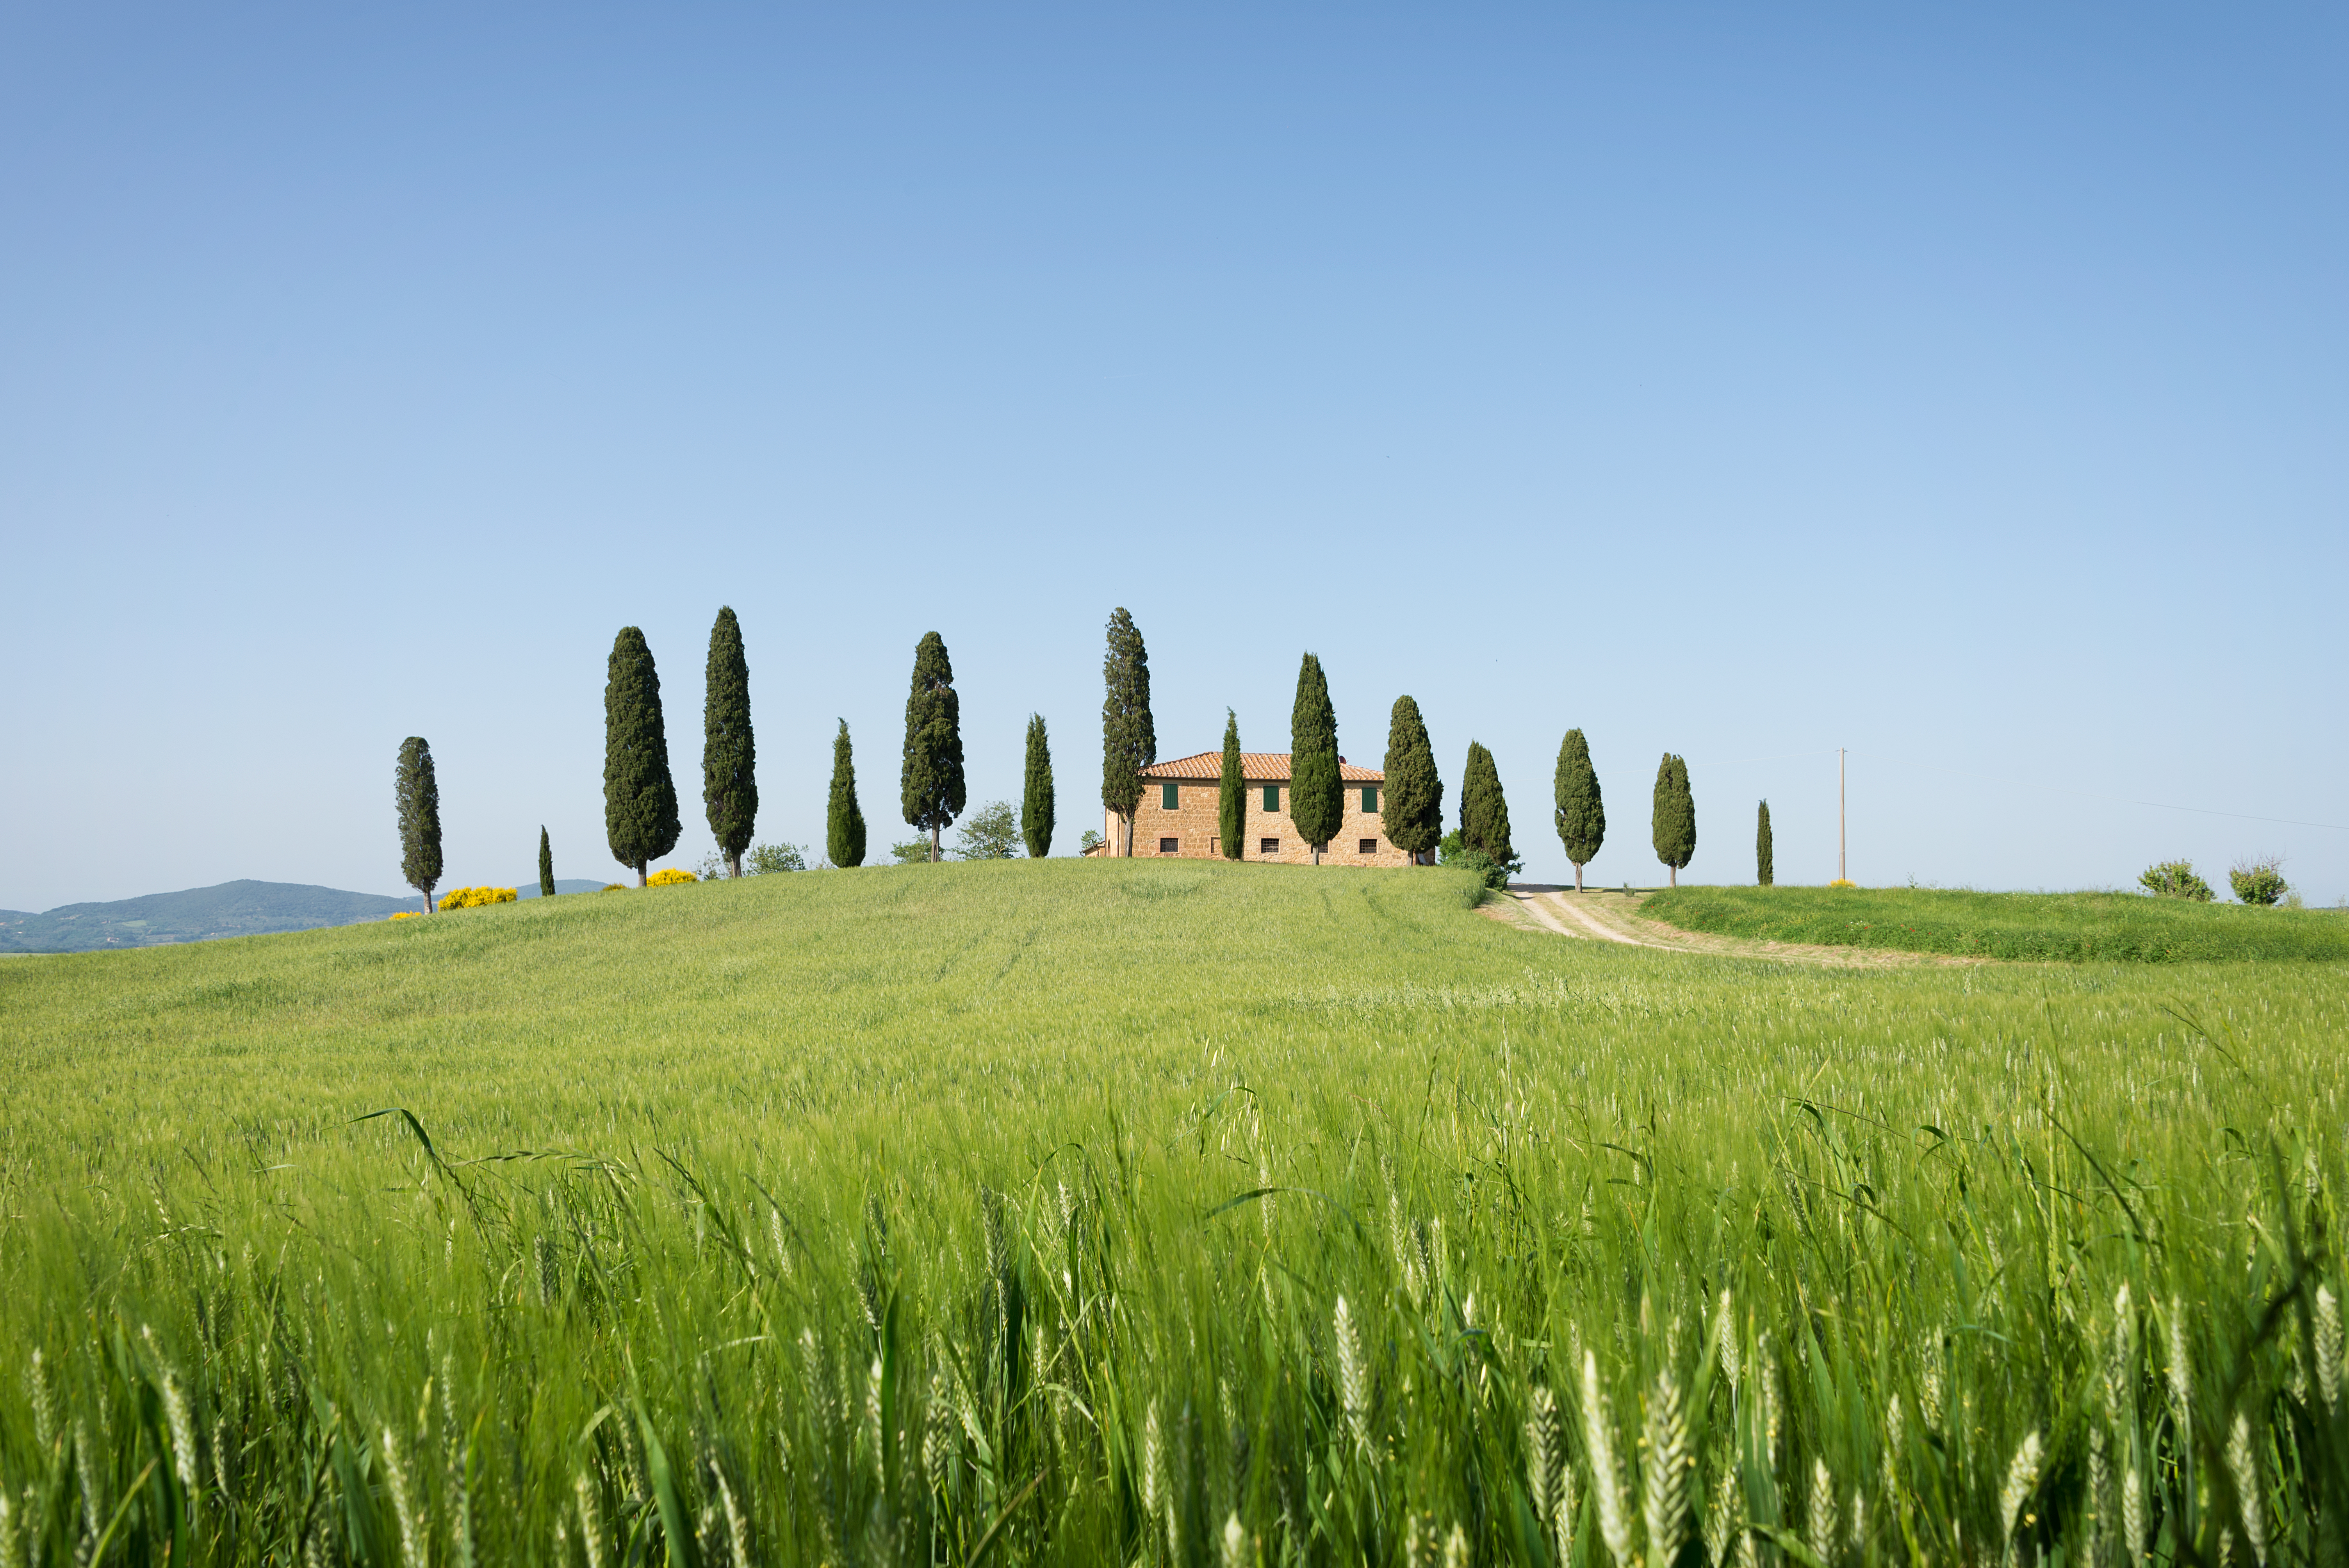 farmhouse-with-cypress-trees-in-tuscany-P3W4EG9